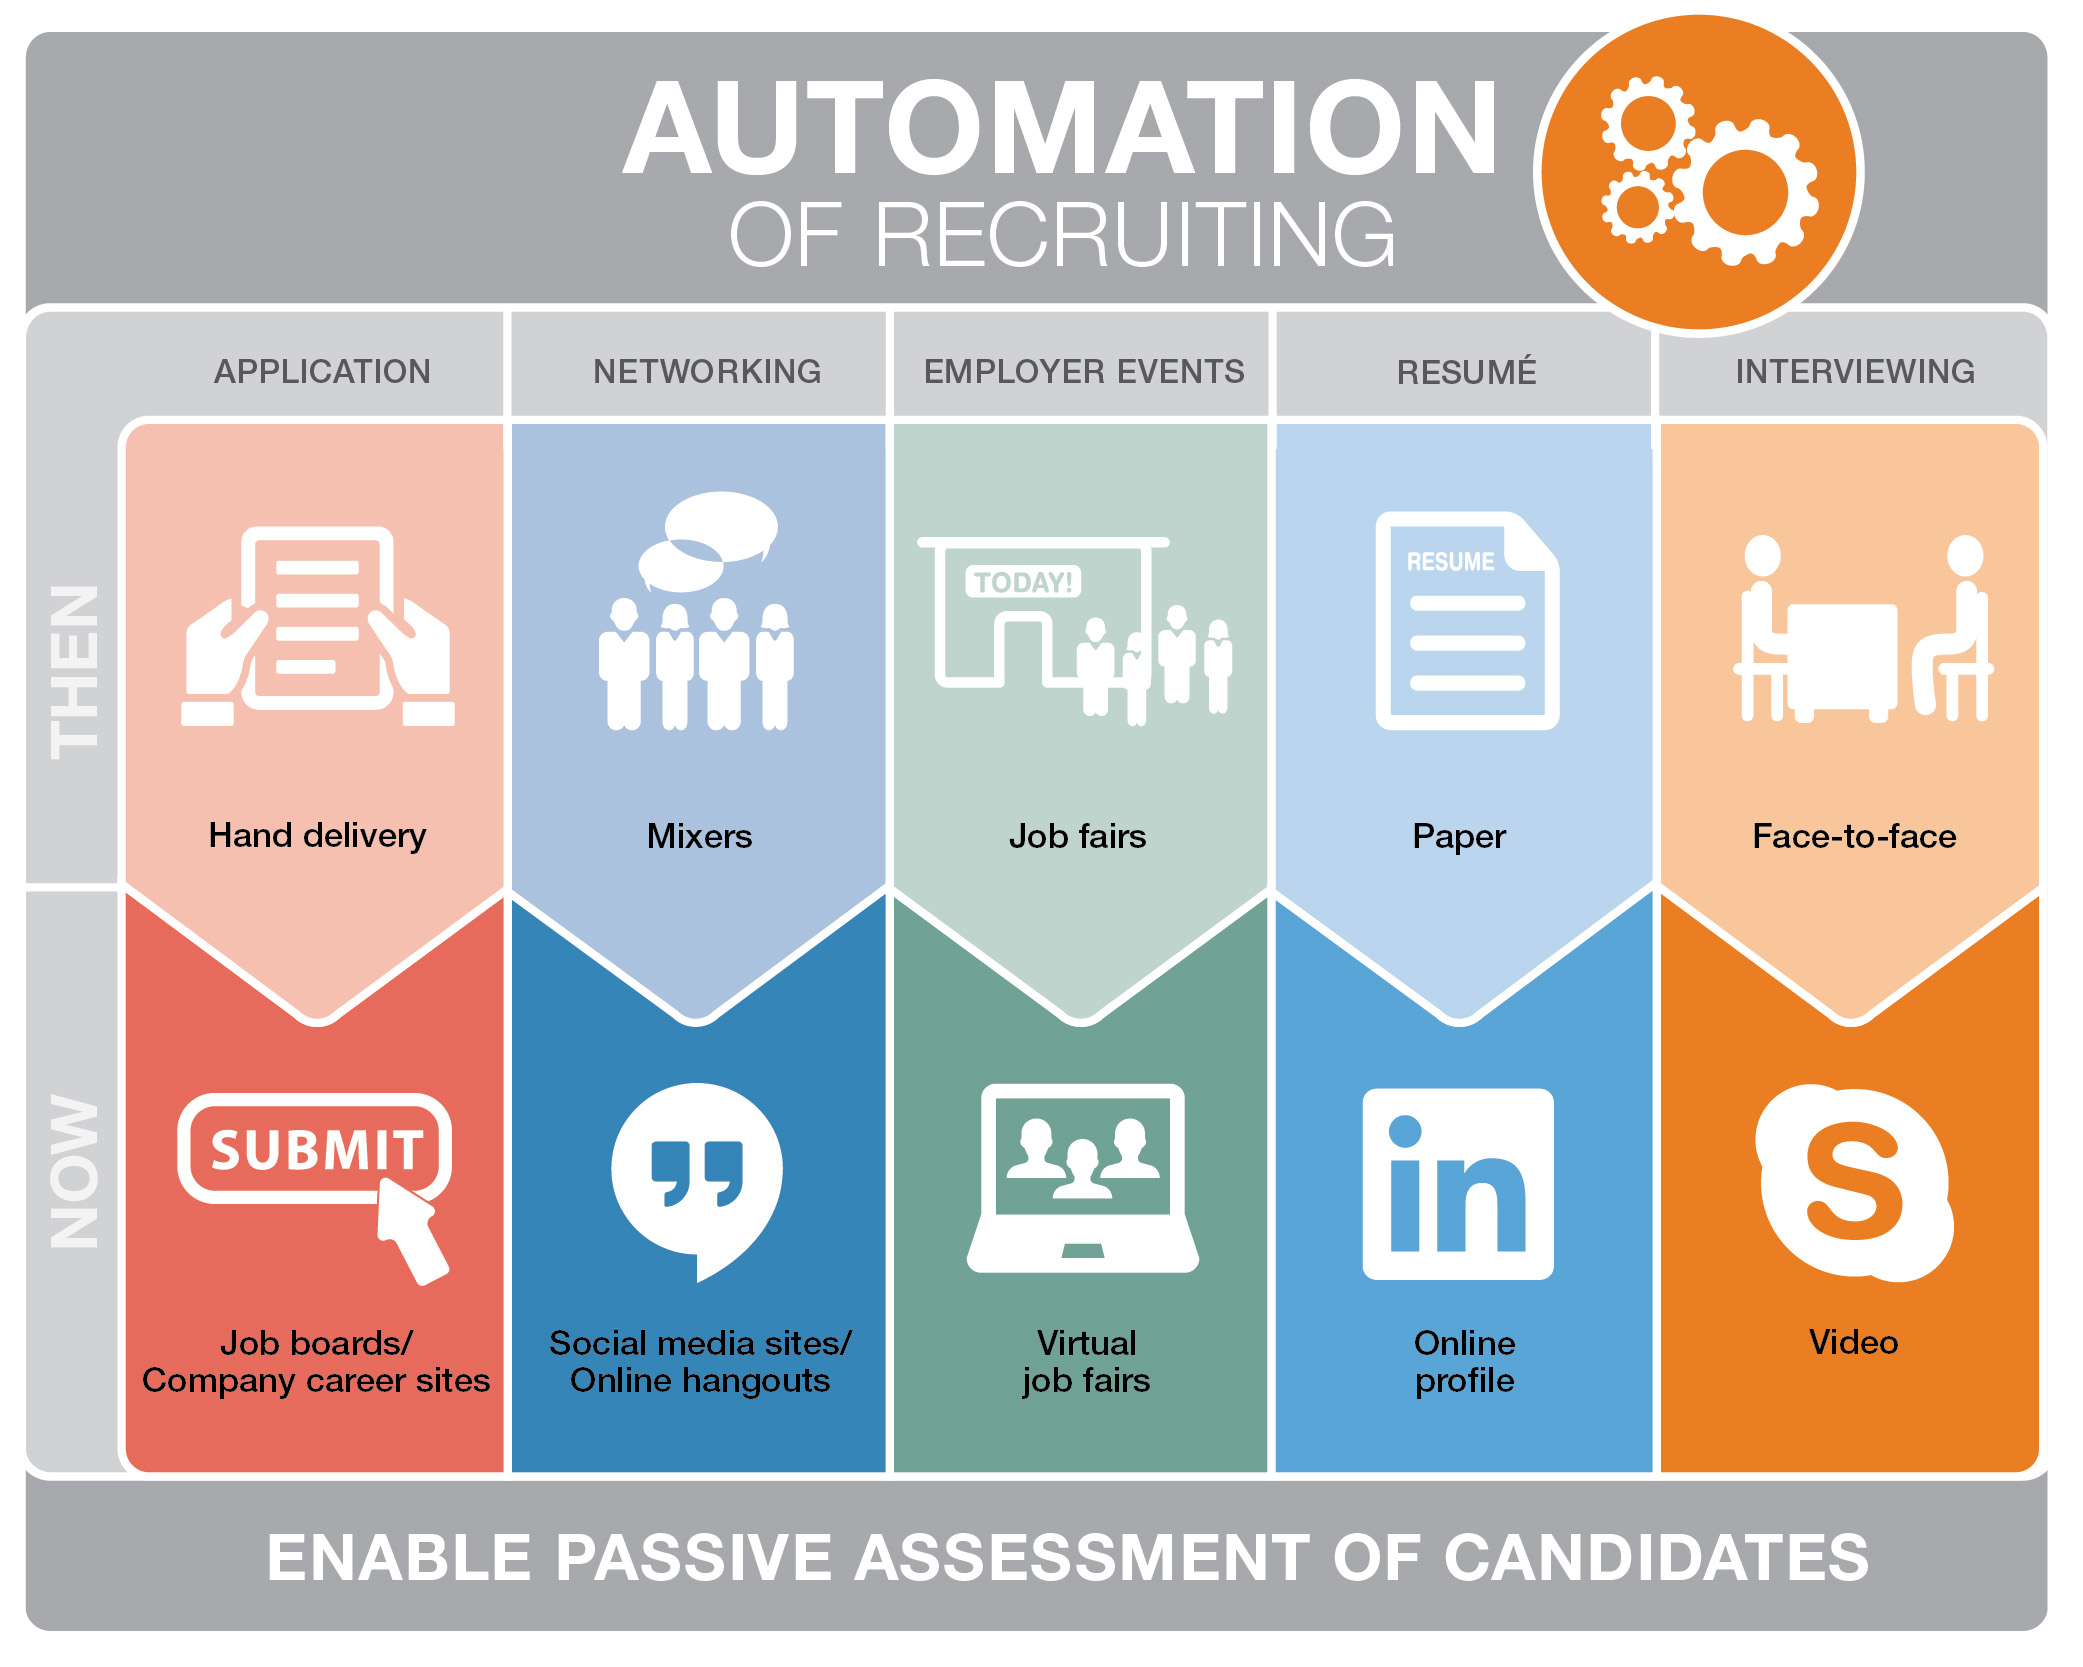 Automation Technology: Attract The Right Talent By Blending High-tech With High-touch